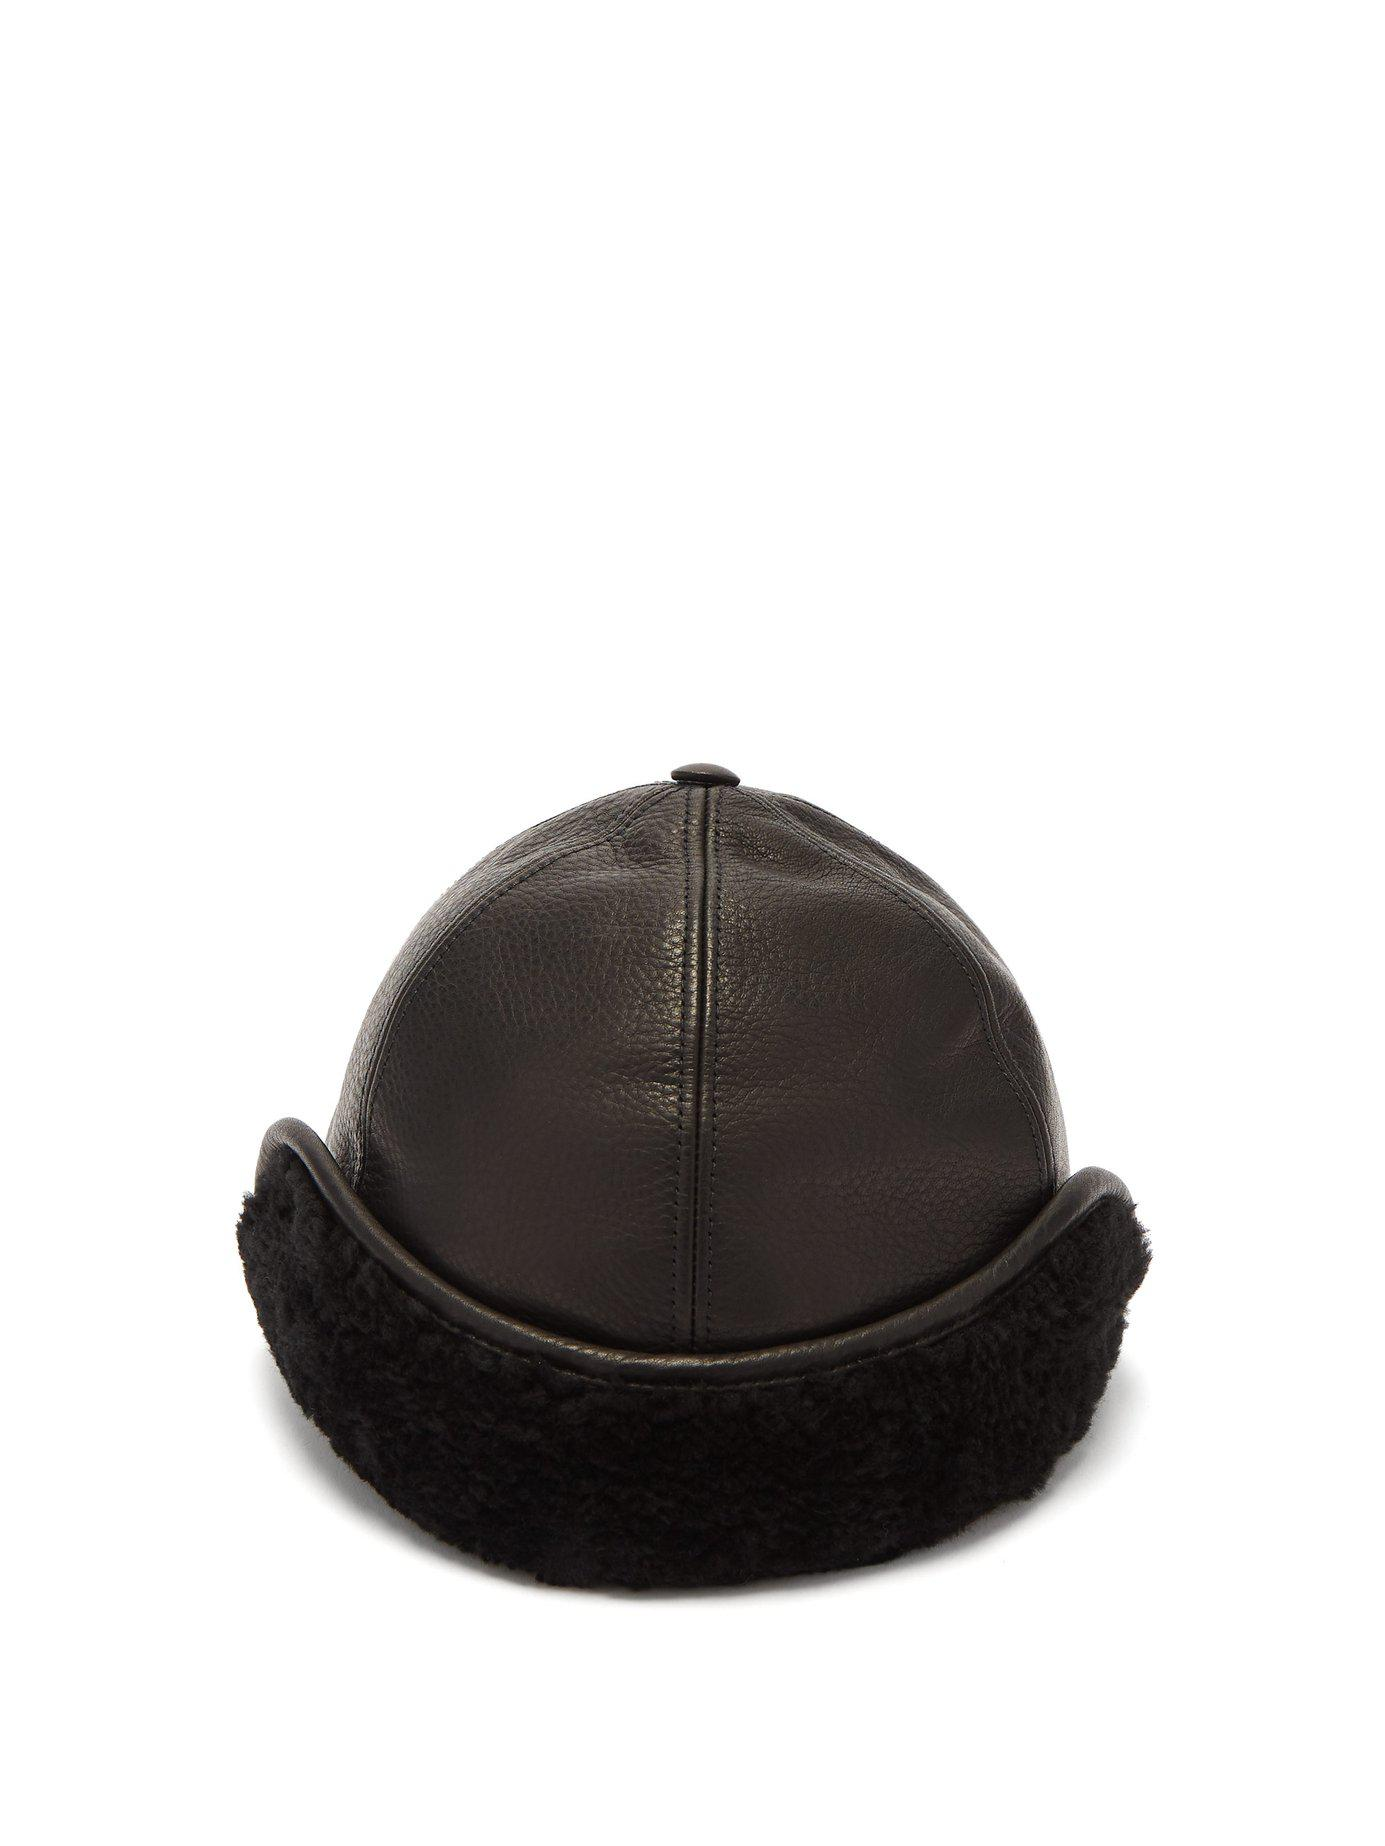 Burberry - Black Explorer Leather Cap - Lyst. View fullscreen 8eb9d1dcd25